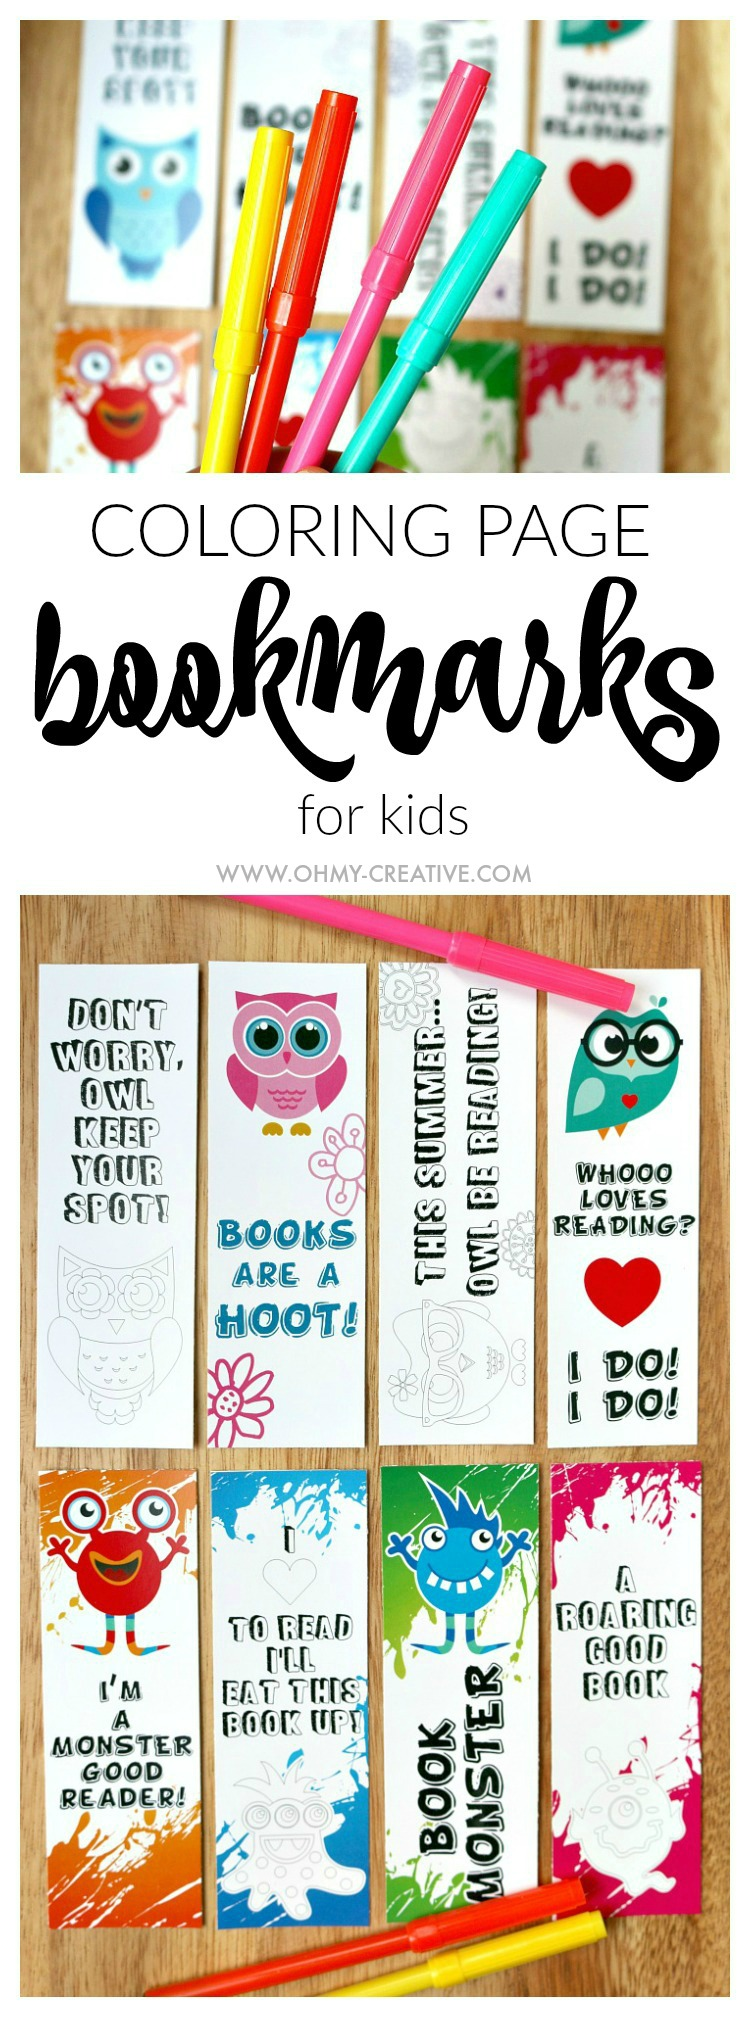 image relating to Printable Bookmarks for Kids titled Printable Bookmark Coloring Internet pages for Small children - Oh My Inventive